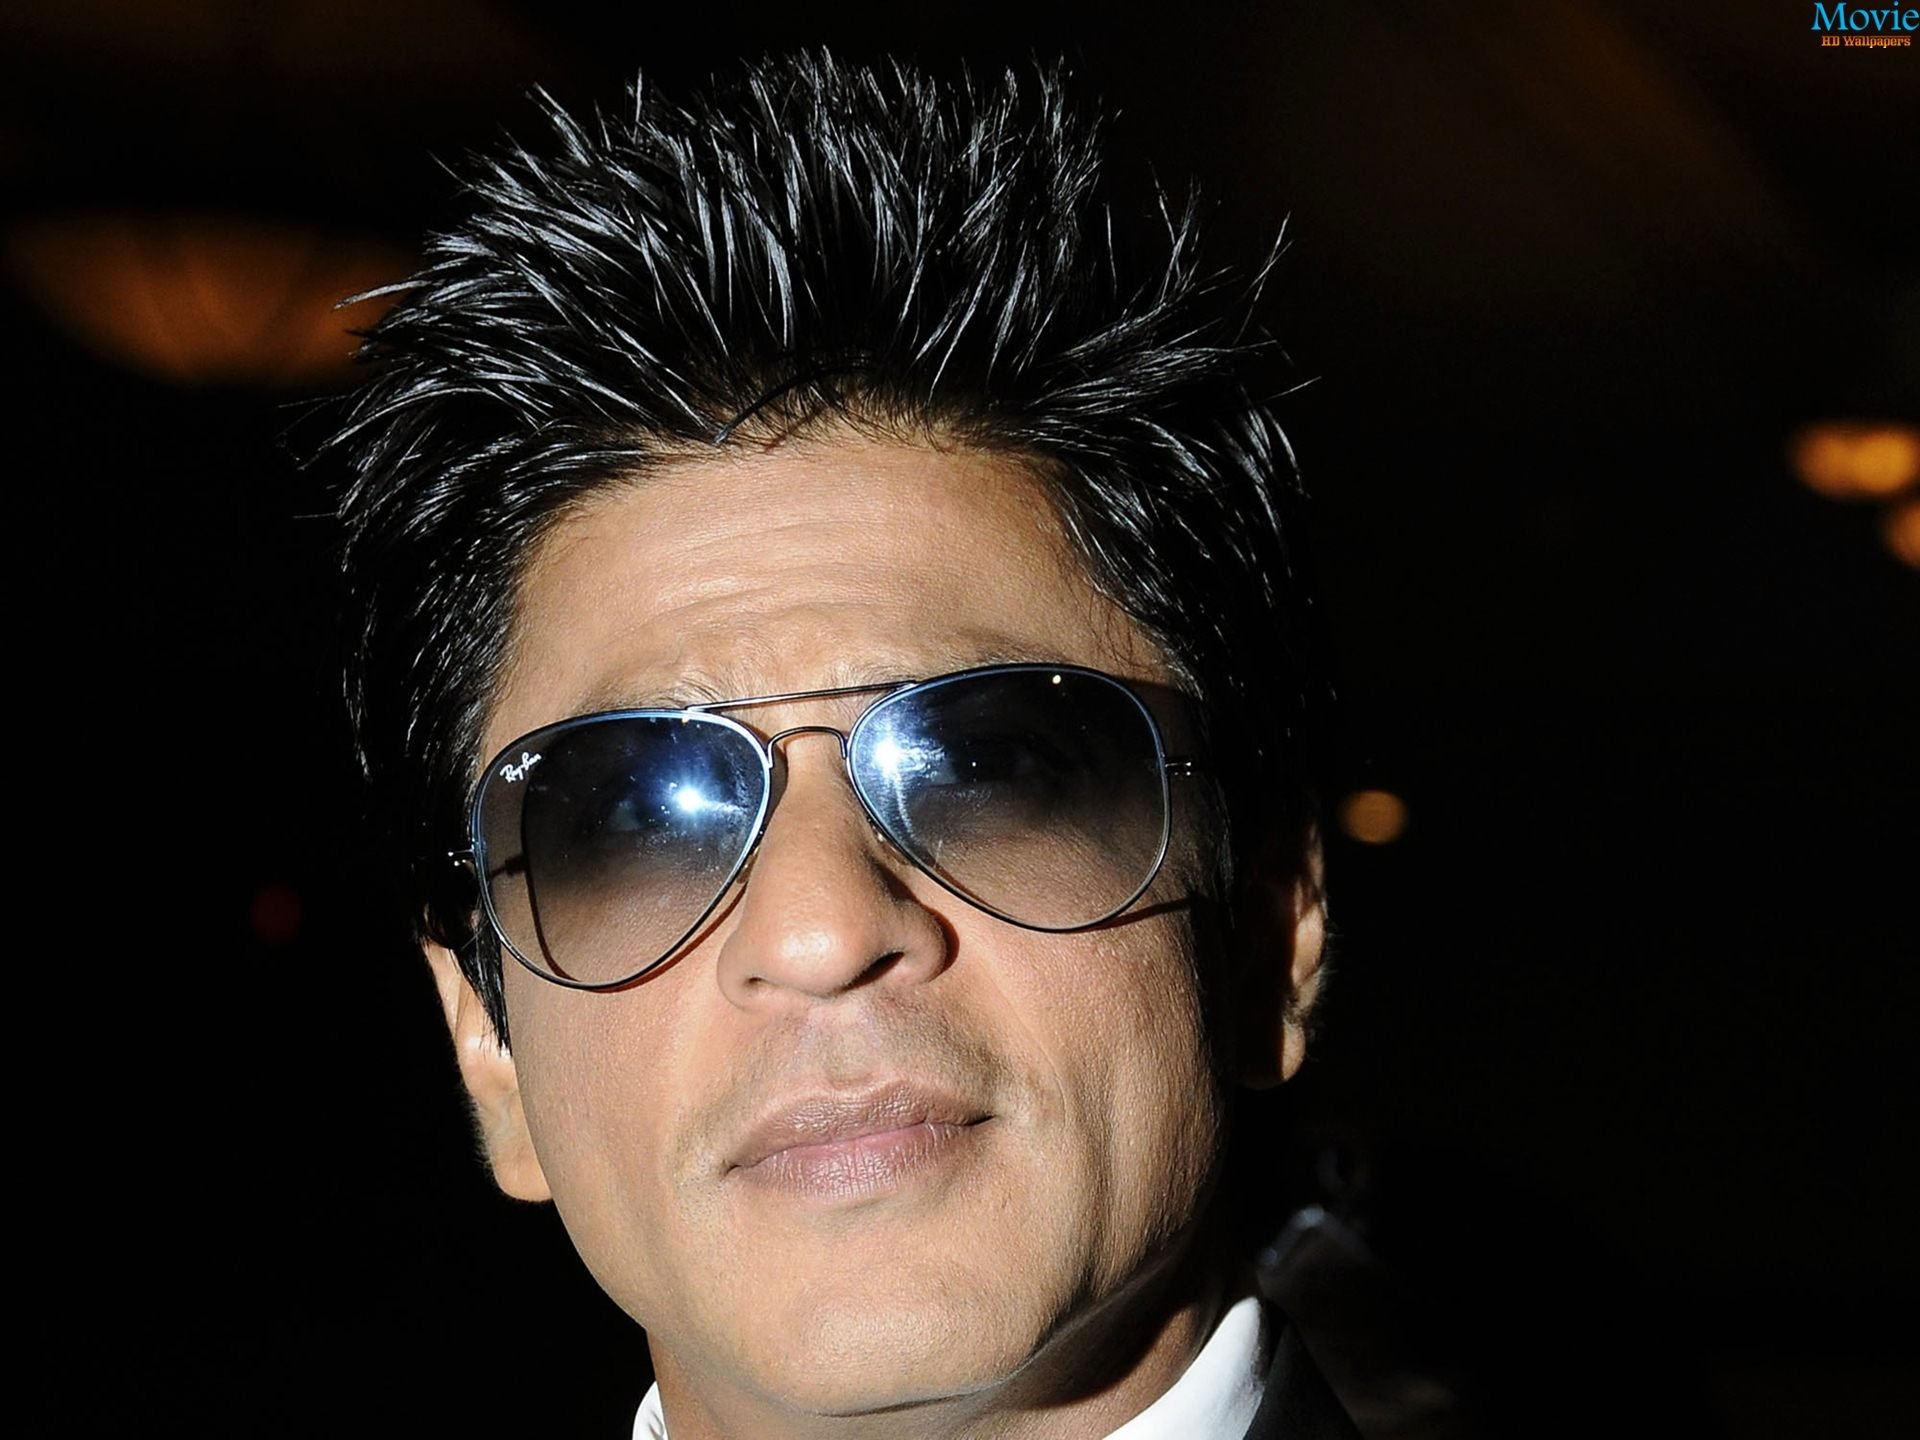 Global Pictures Gallery Shah Rukh Khan Full Hd Wallpapers: Happy New Year Shah Rukh Khan Movie